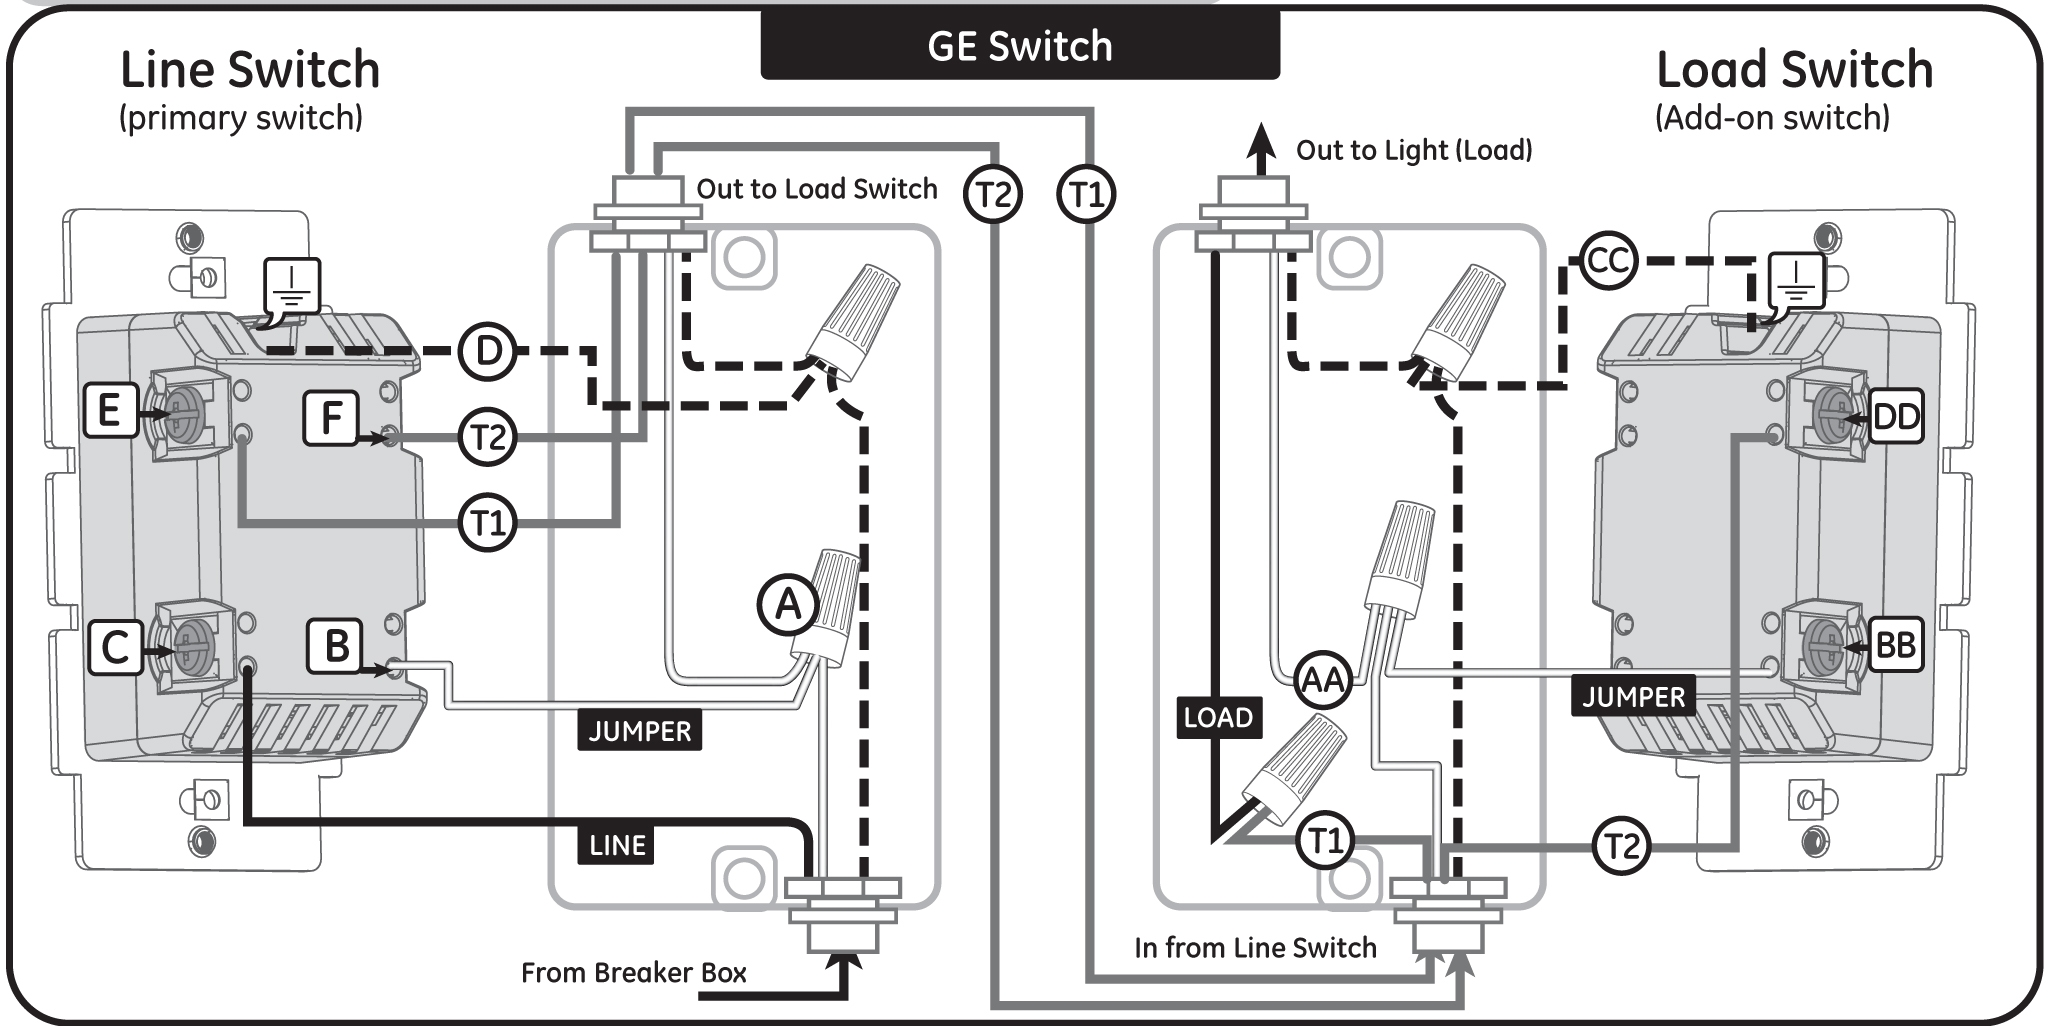 Leviton Electrical Schematic Wiring Diagram - Schematics Online on